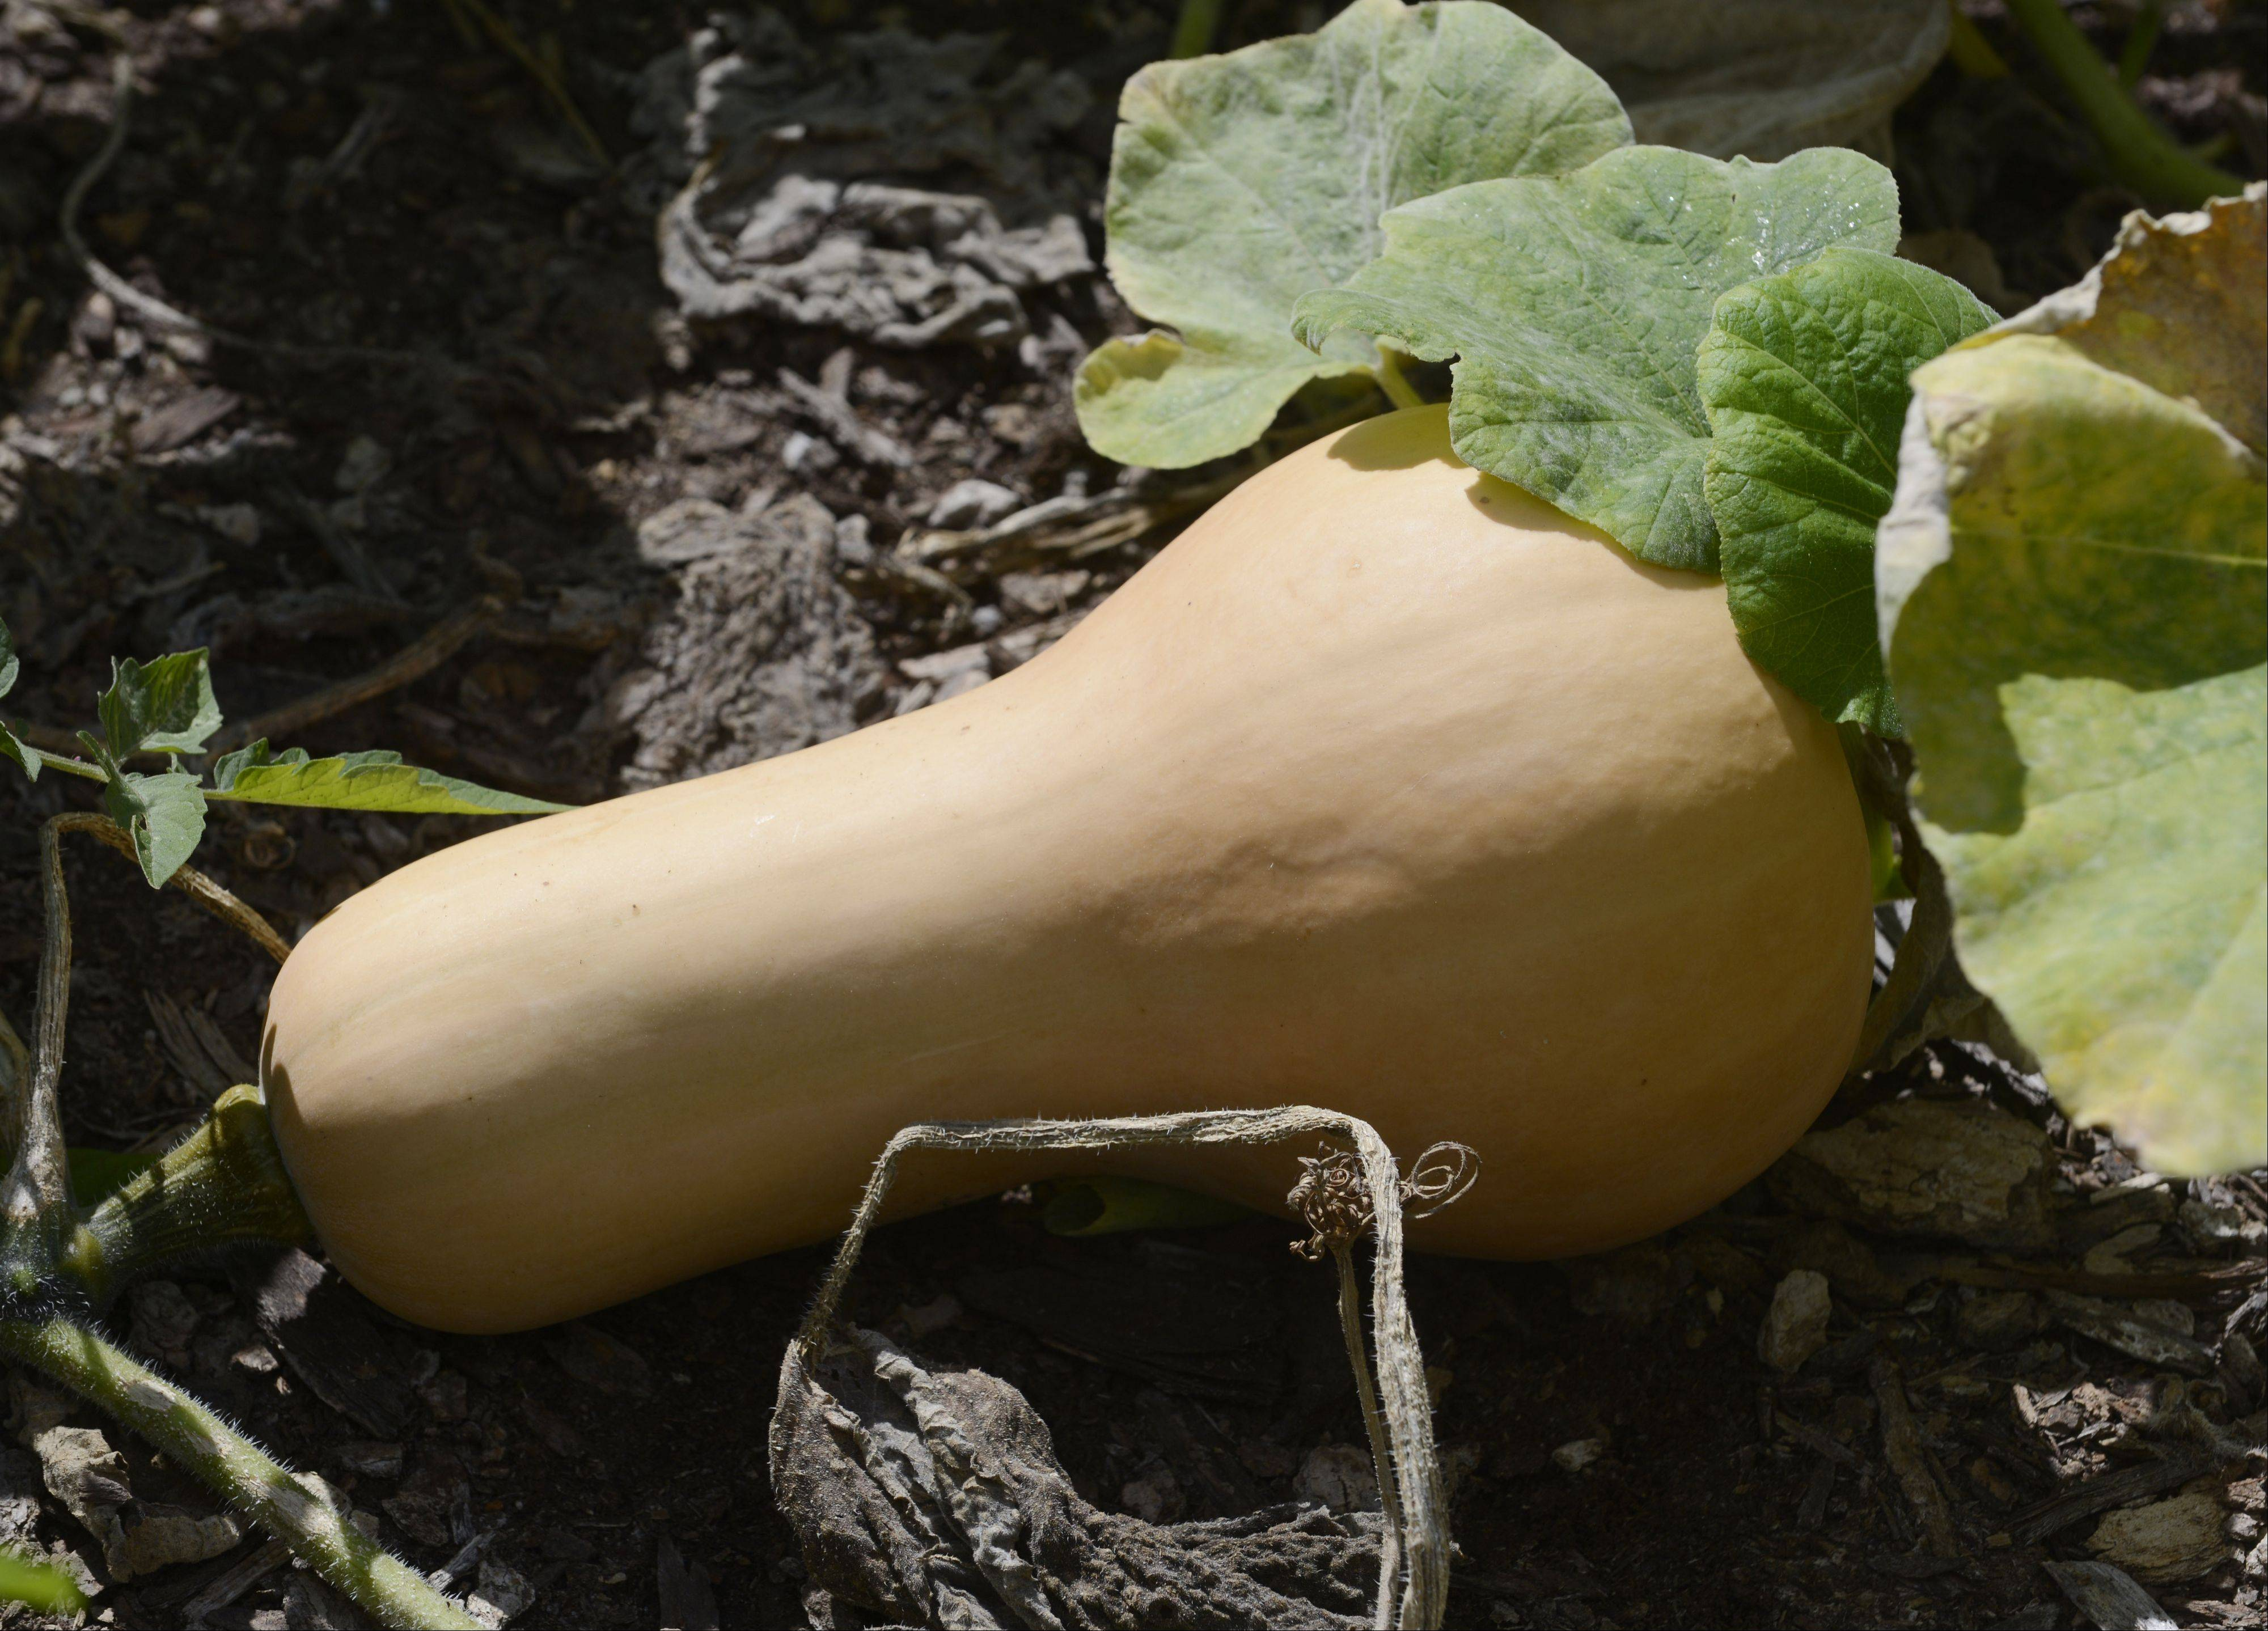 The dedication of the Windsor School families to tending the garden all summer resulted in beautiful butternut squash.